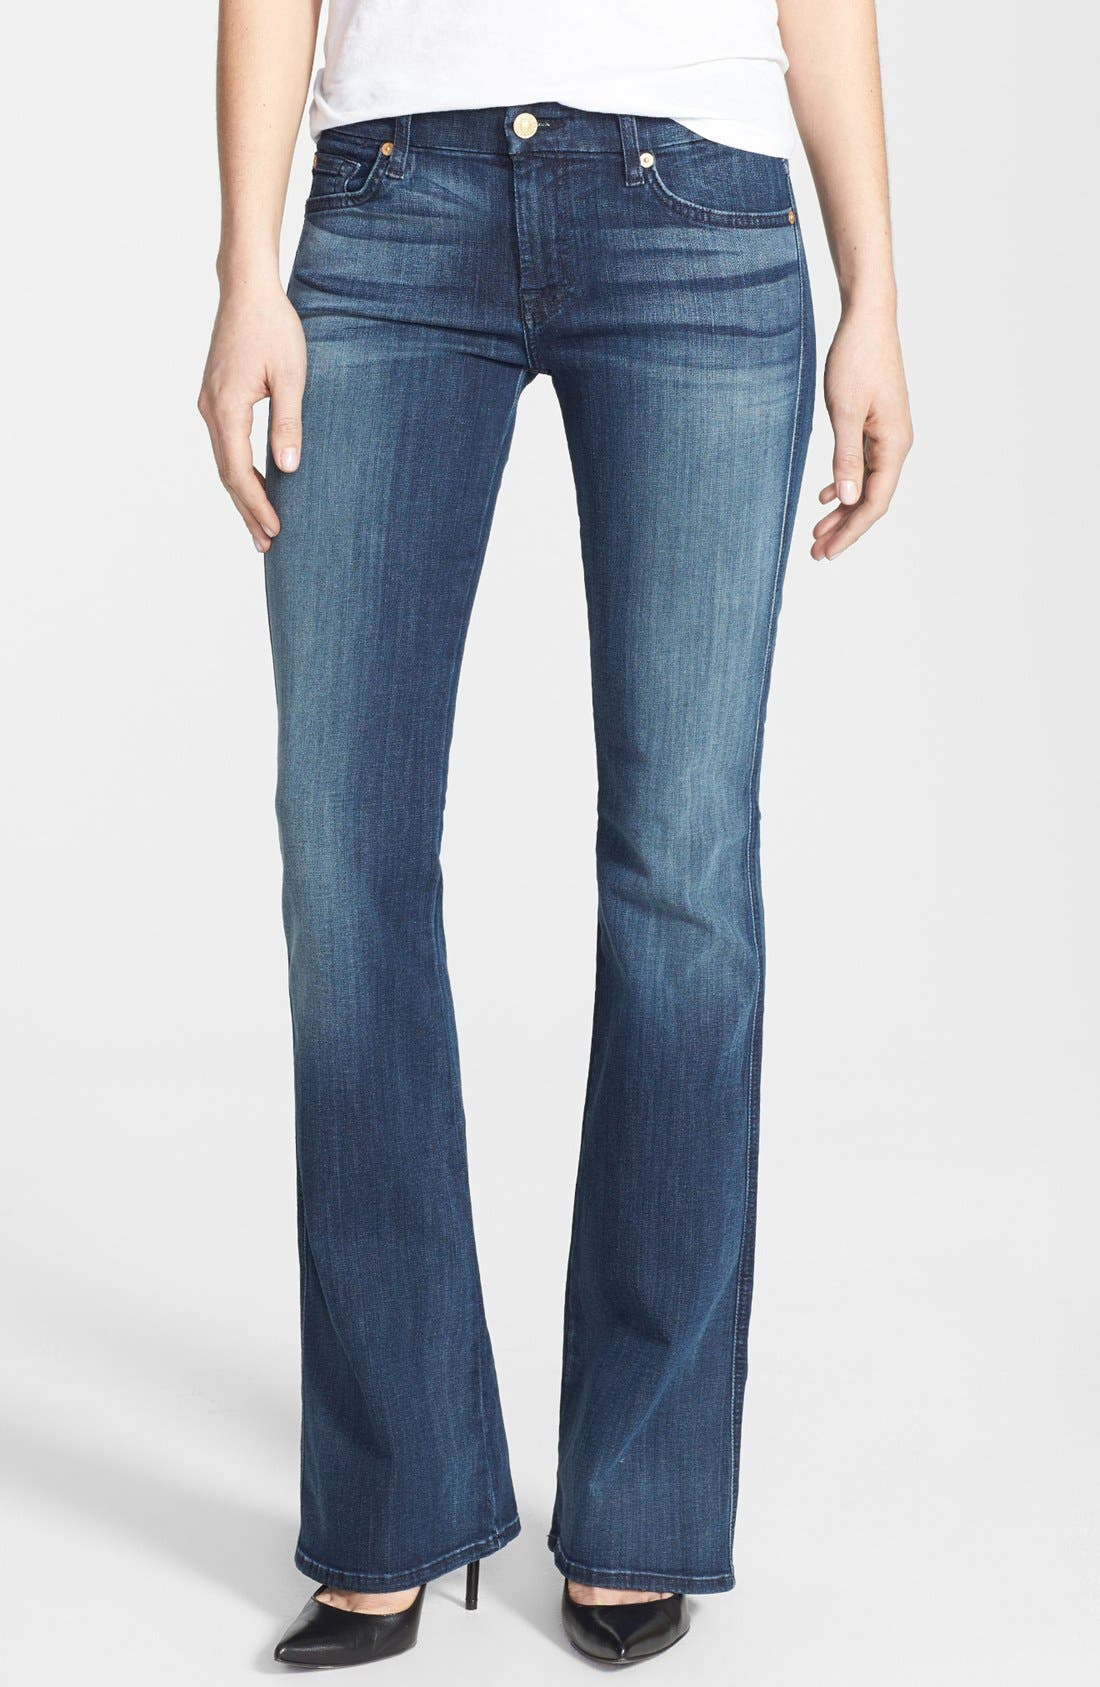 Alternate Image 1 Selected - 7 For All Mankind® 'A-Pocket' Bootcut Jeans (Dark Destroy)